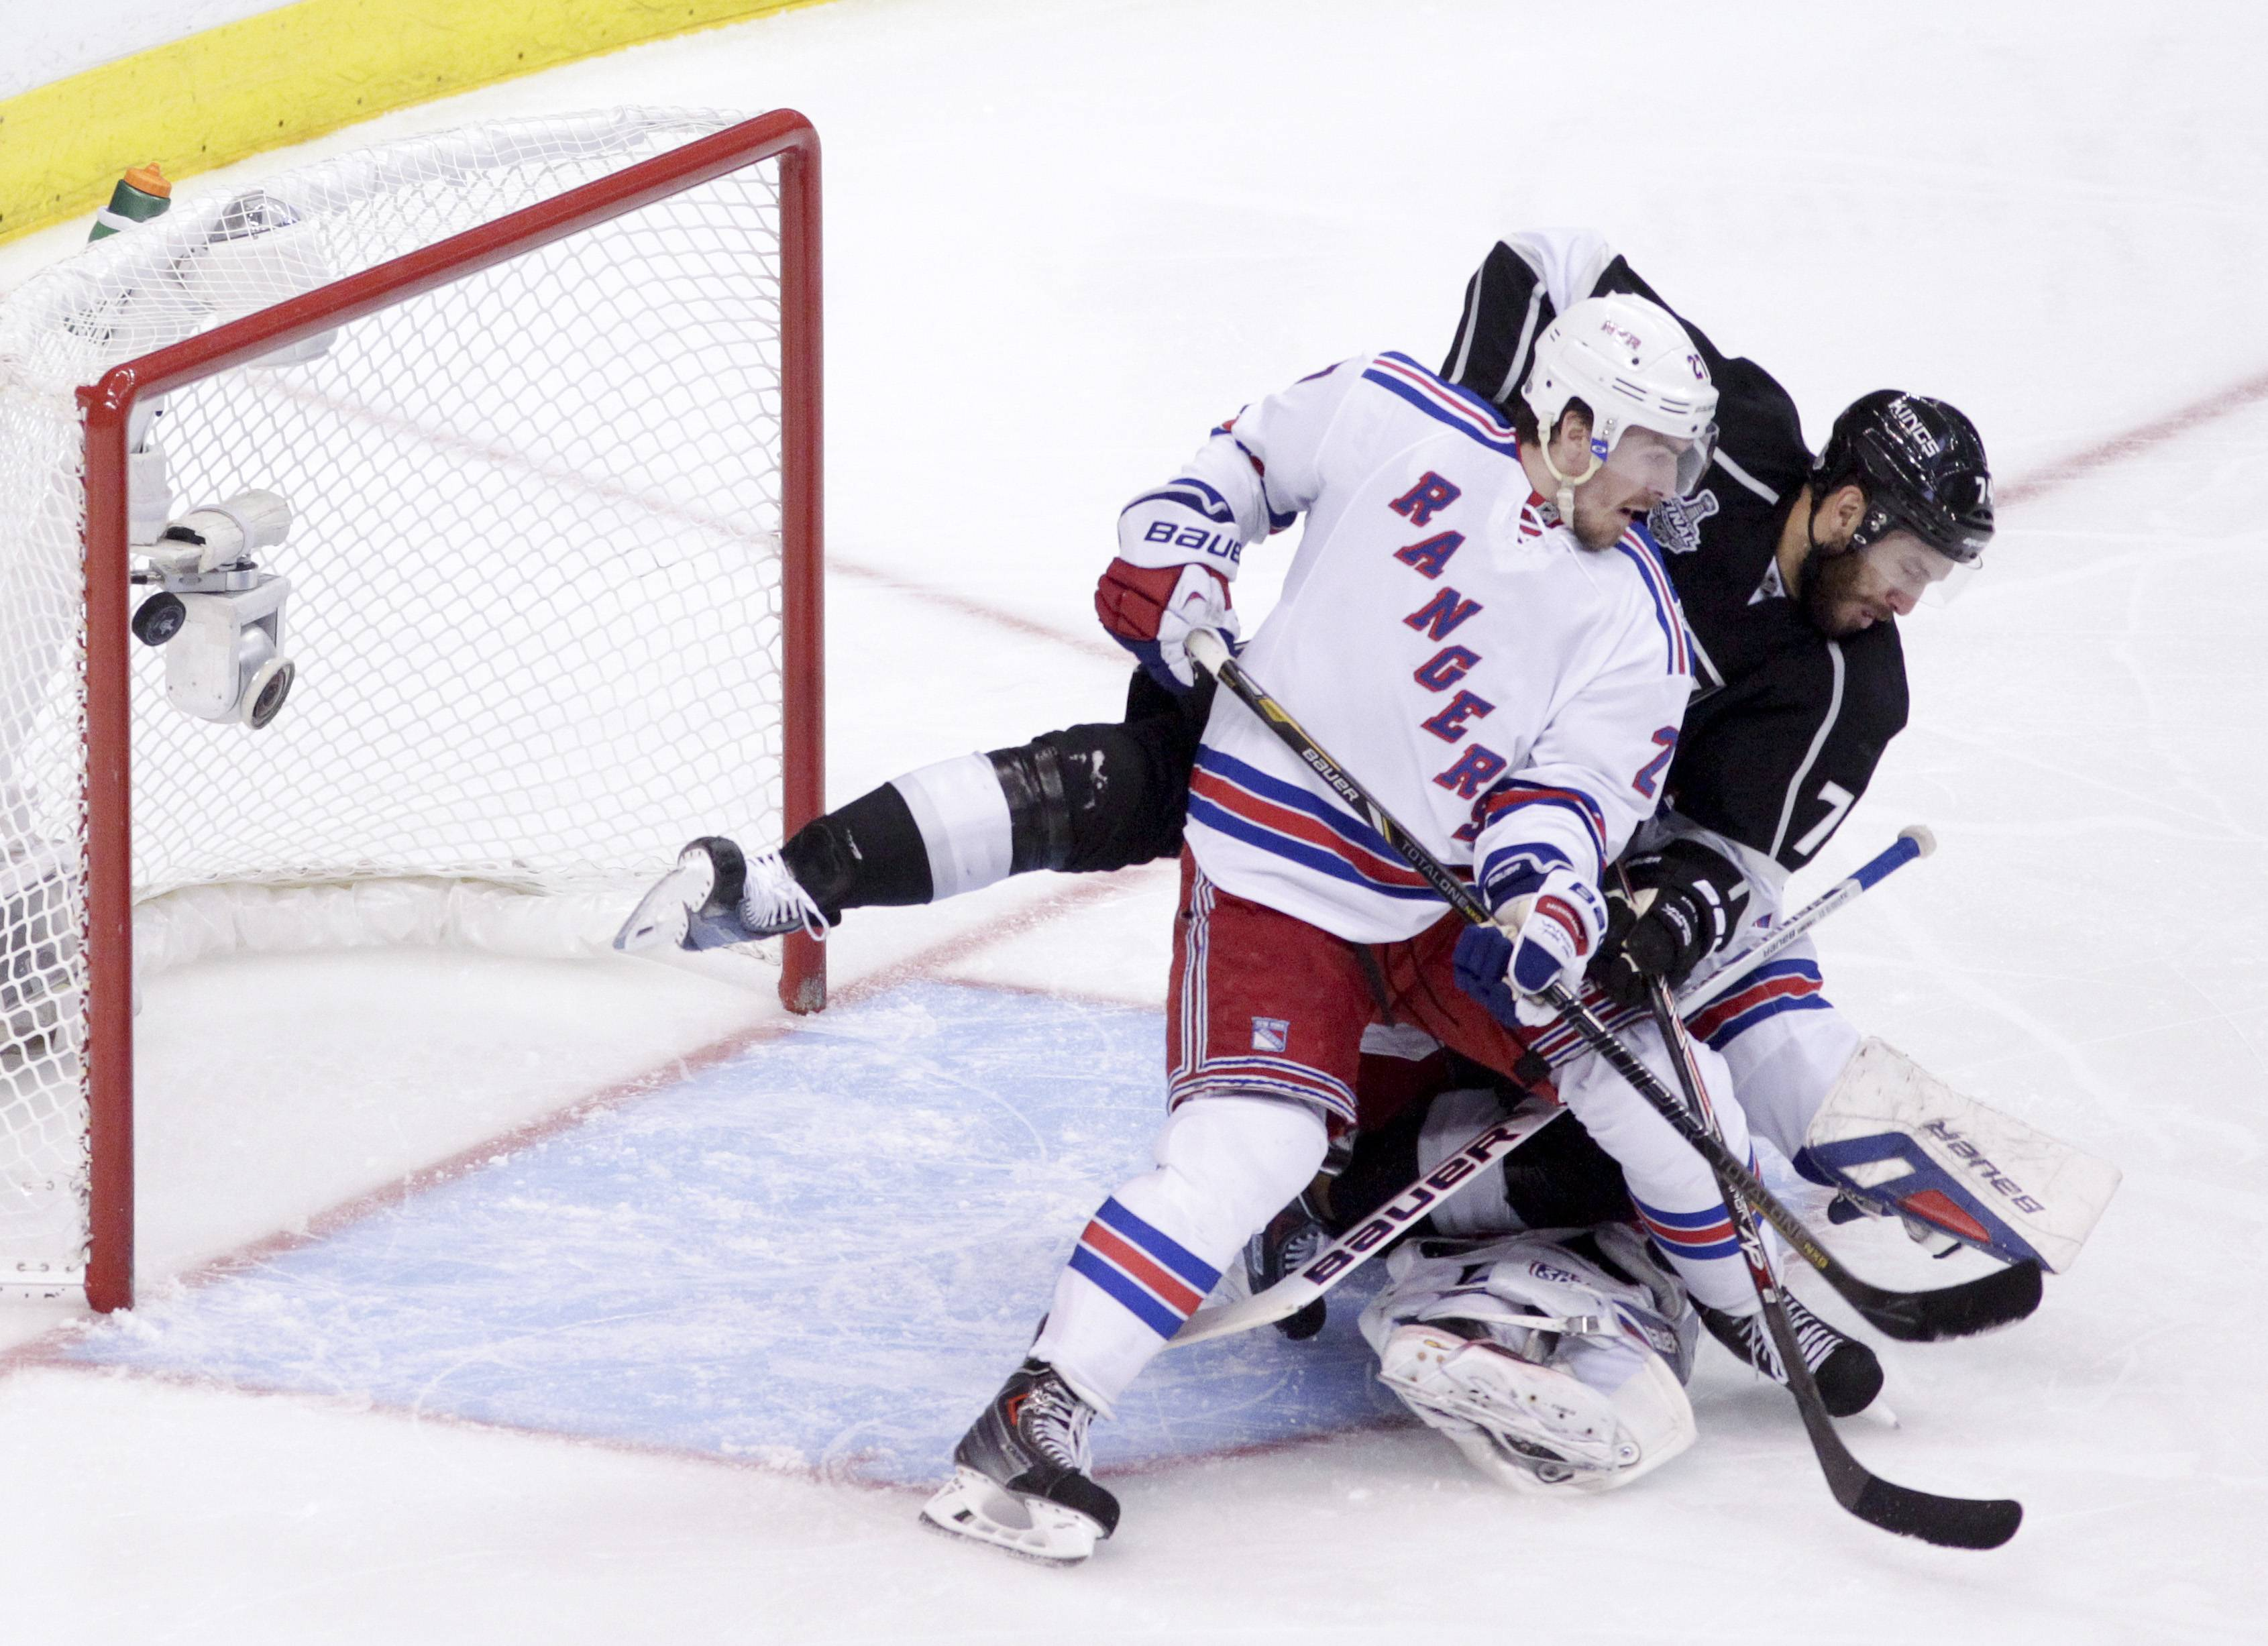 Los Angeles Kings left wing Dwight King, middle, scores between New York Rangers defenseman Ryan McDonagh, left, and goalie Henrik Lundqvist, of Sweden, during the third period of Game 2 Saturday in the NHL Stanley Cup Final hockey series in Los Angeles. NHL Commissioner Gary Bettman has announced that concussions are down across the league.